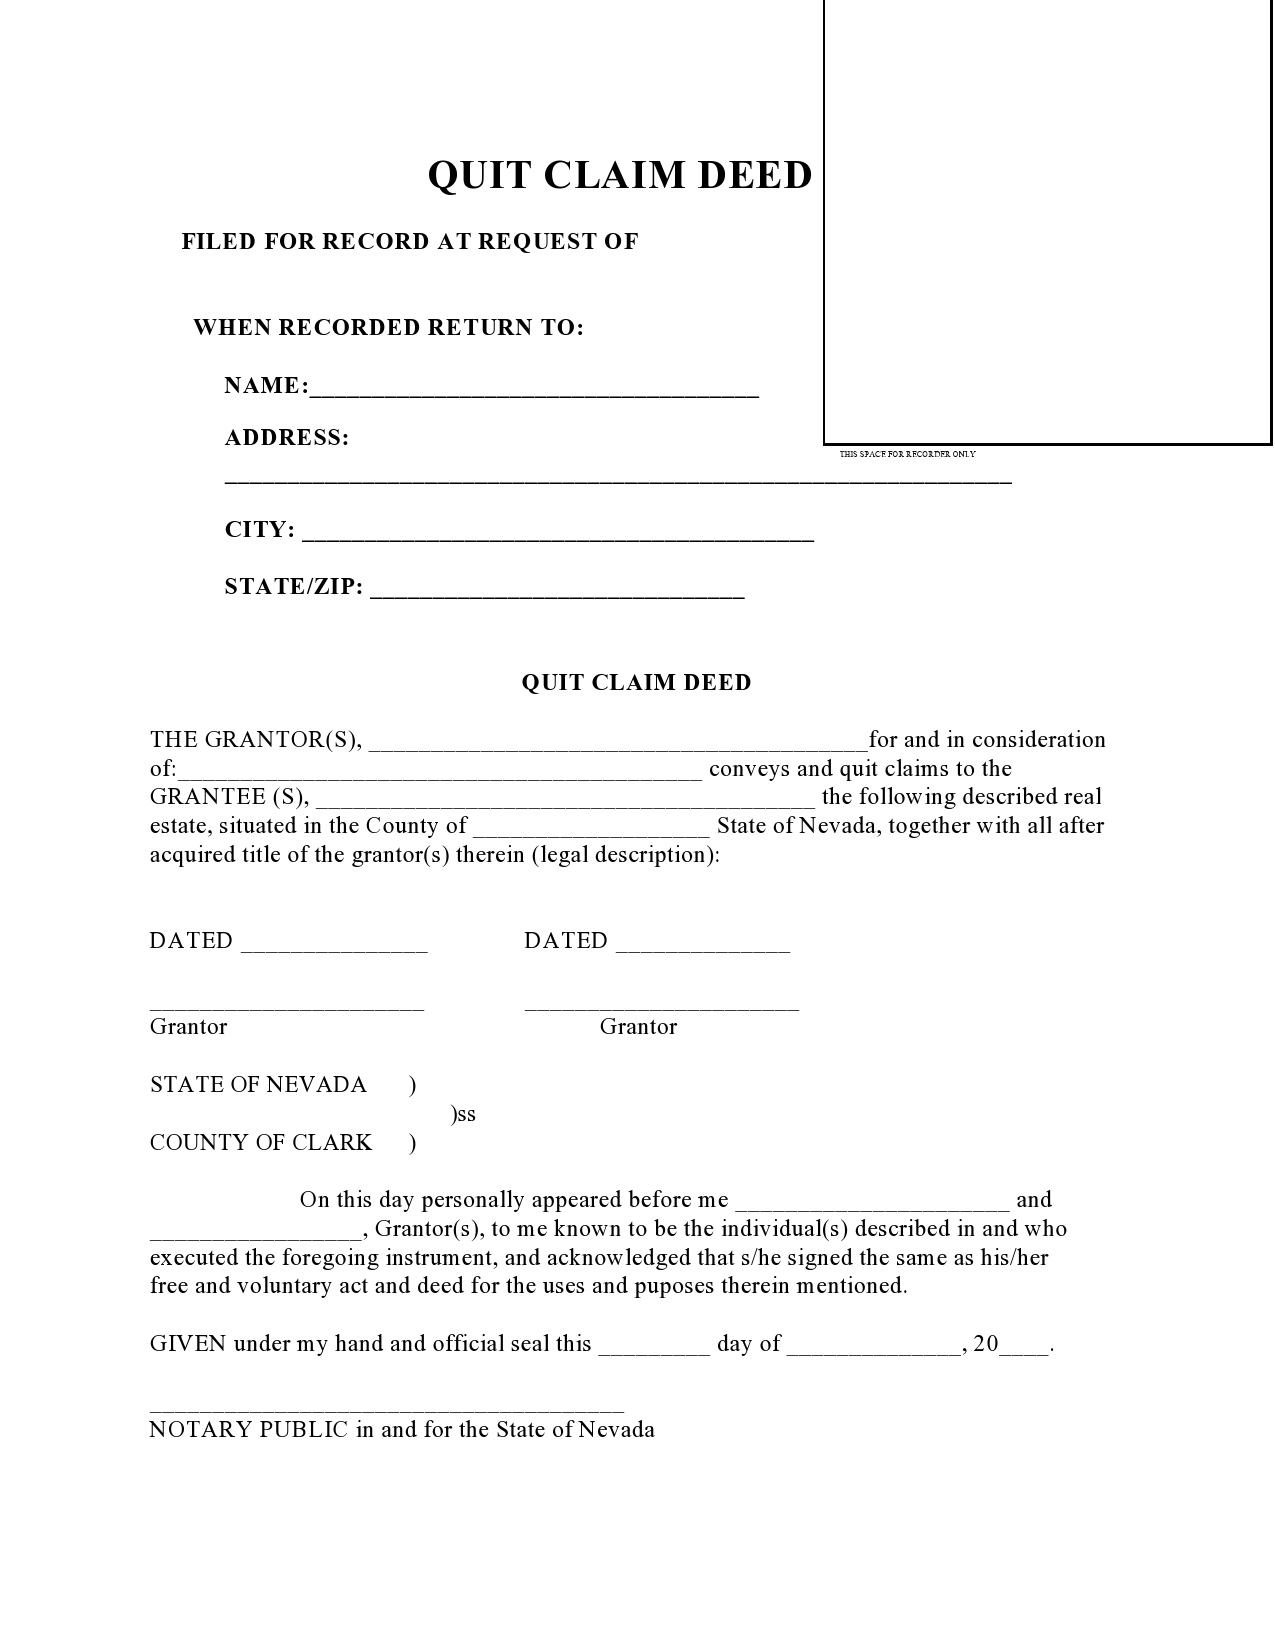 Free quit claim deed form 21